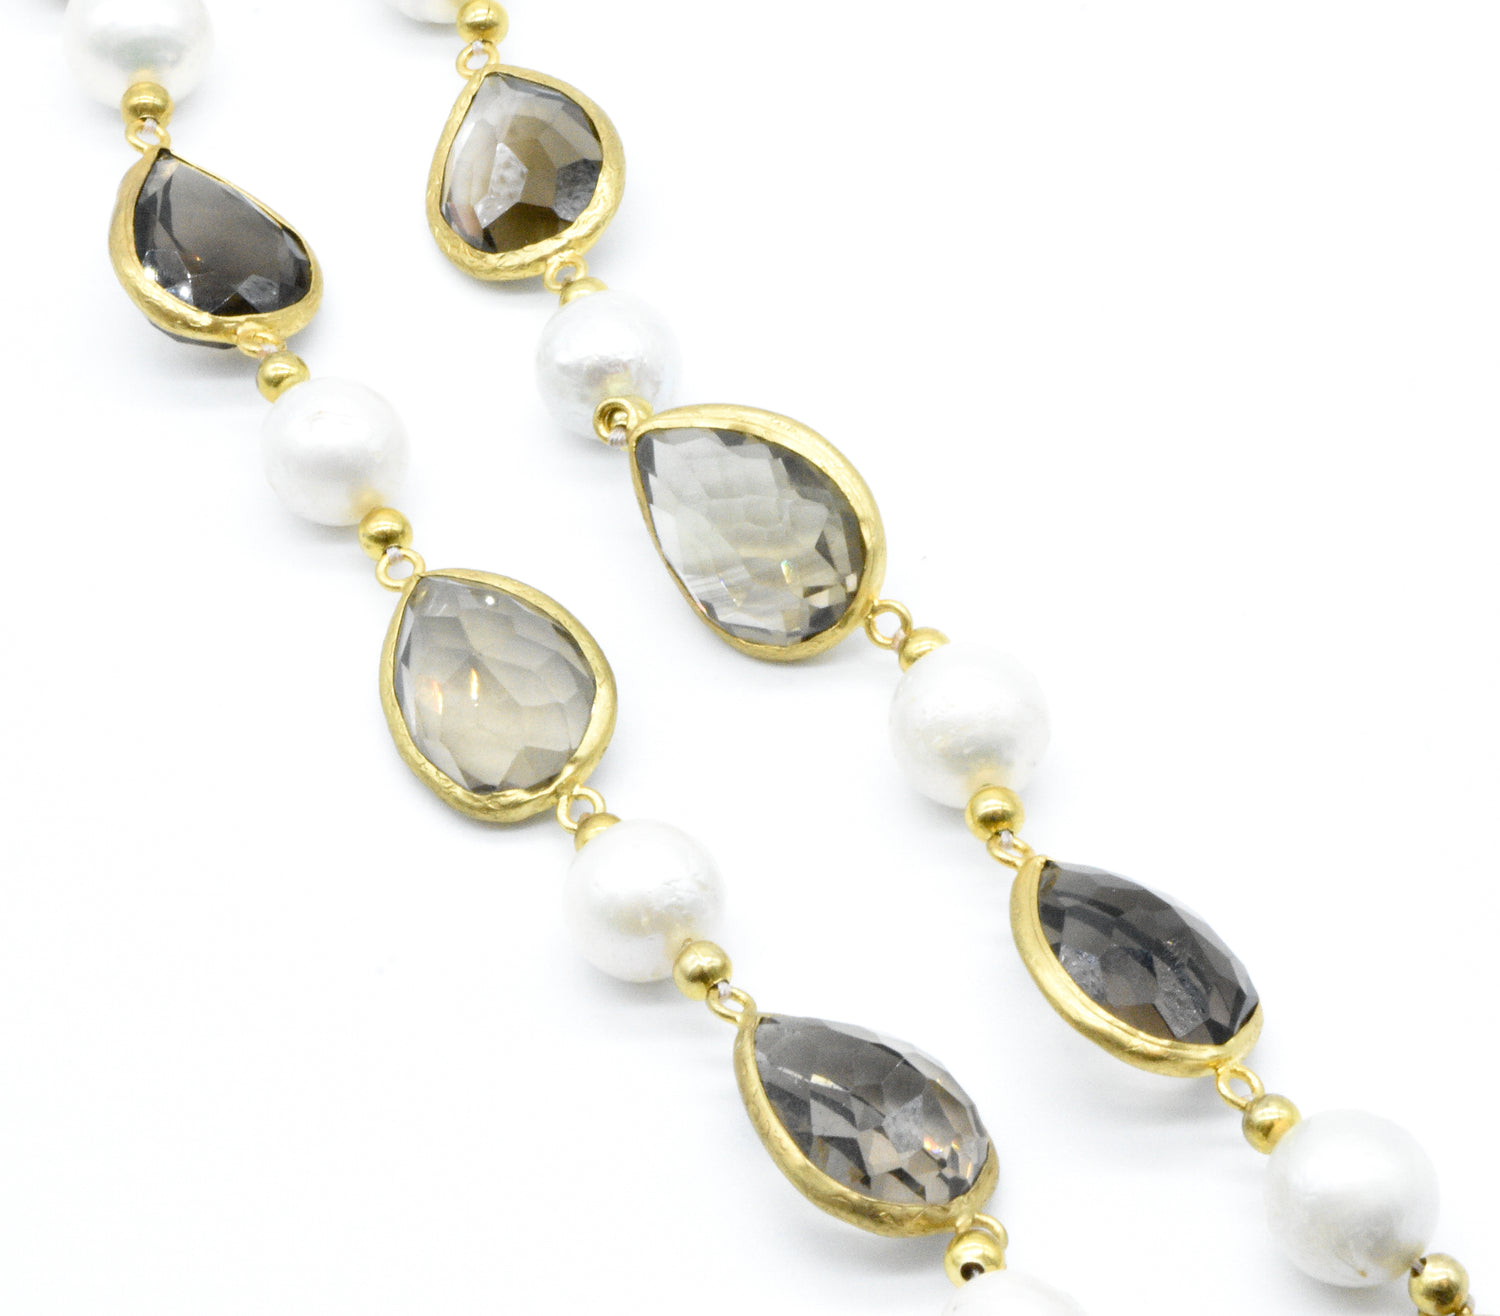 Aylas gold plated semi precious gem stone Baroque Pearl Smoky quartz Necklace - Ottoman Handmade Jewellery Hand Made Gold Plated